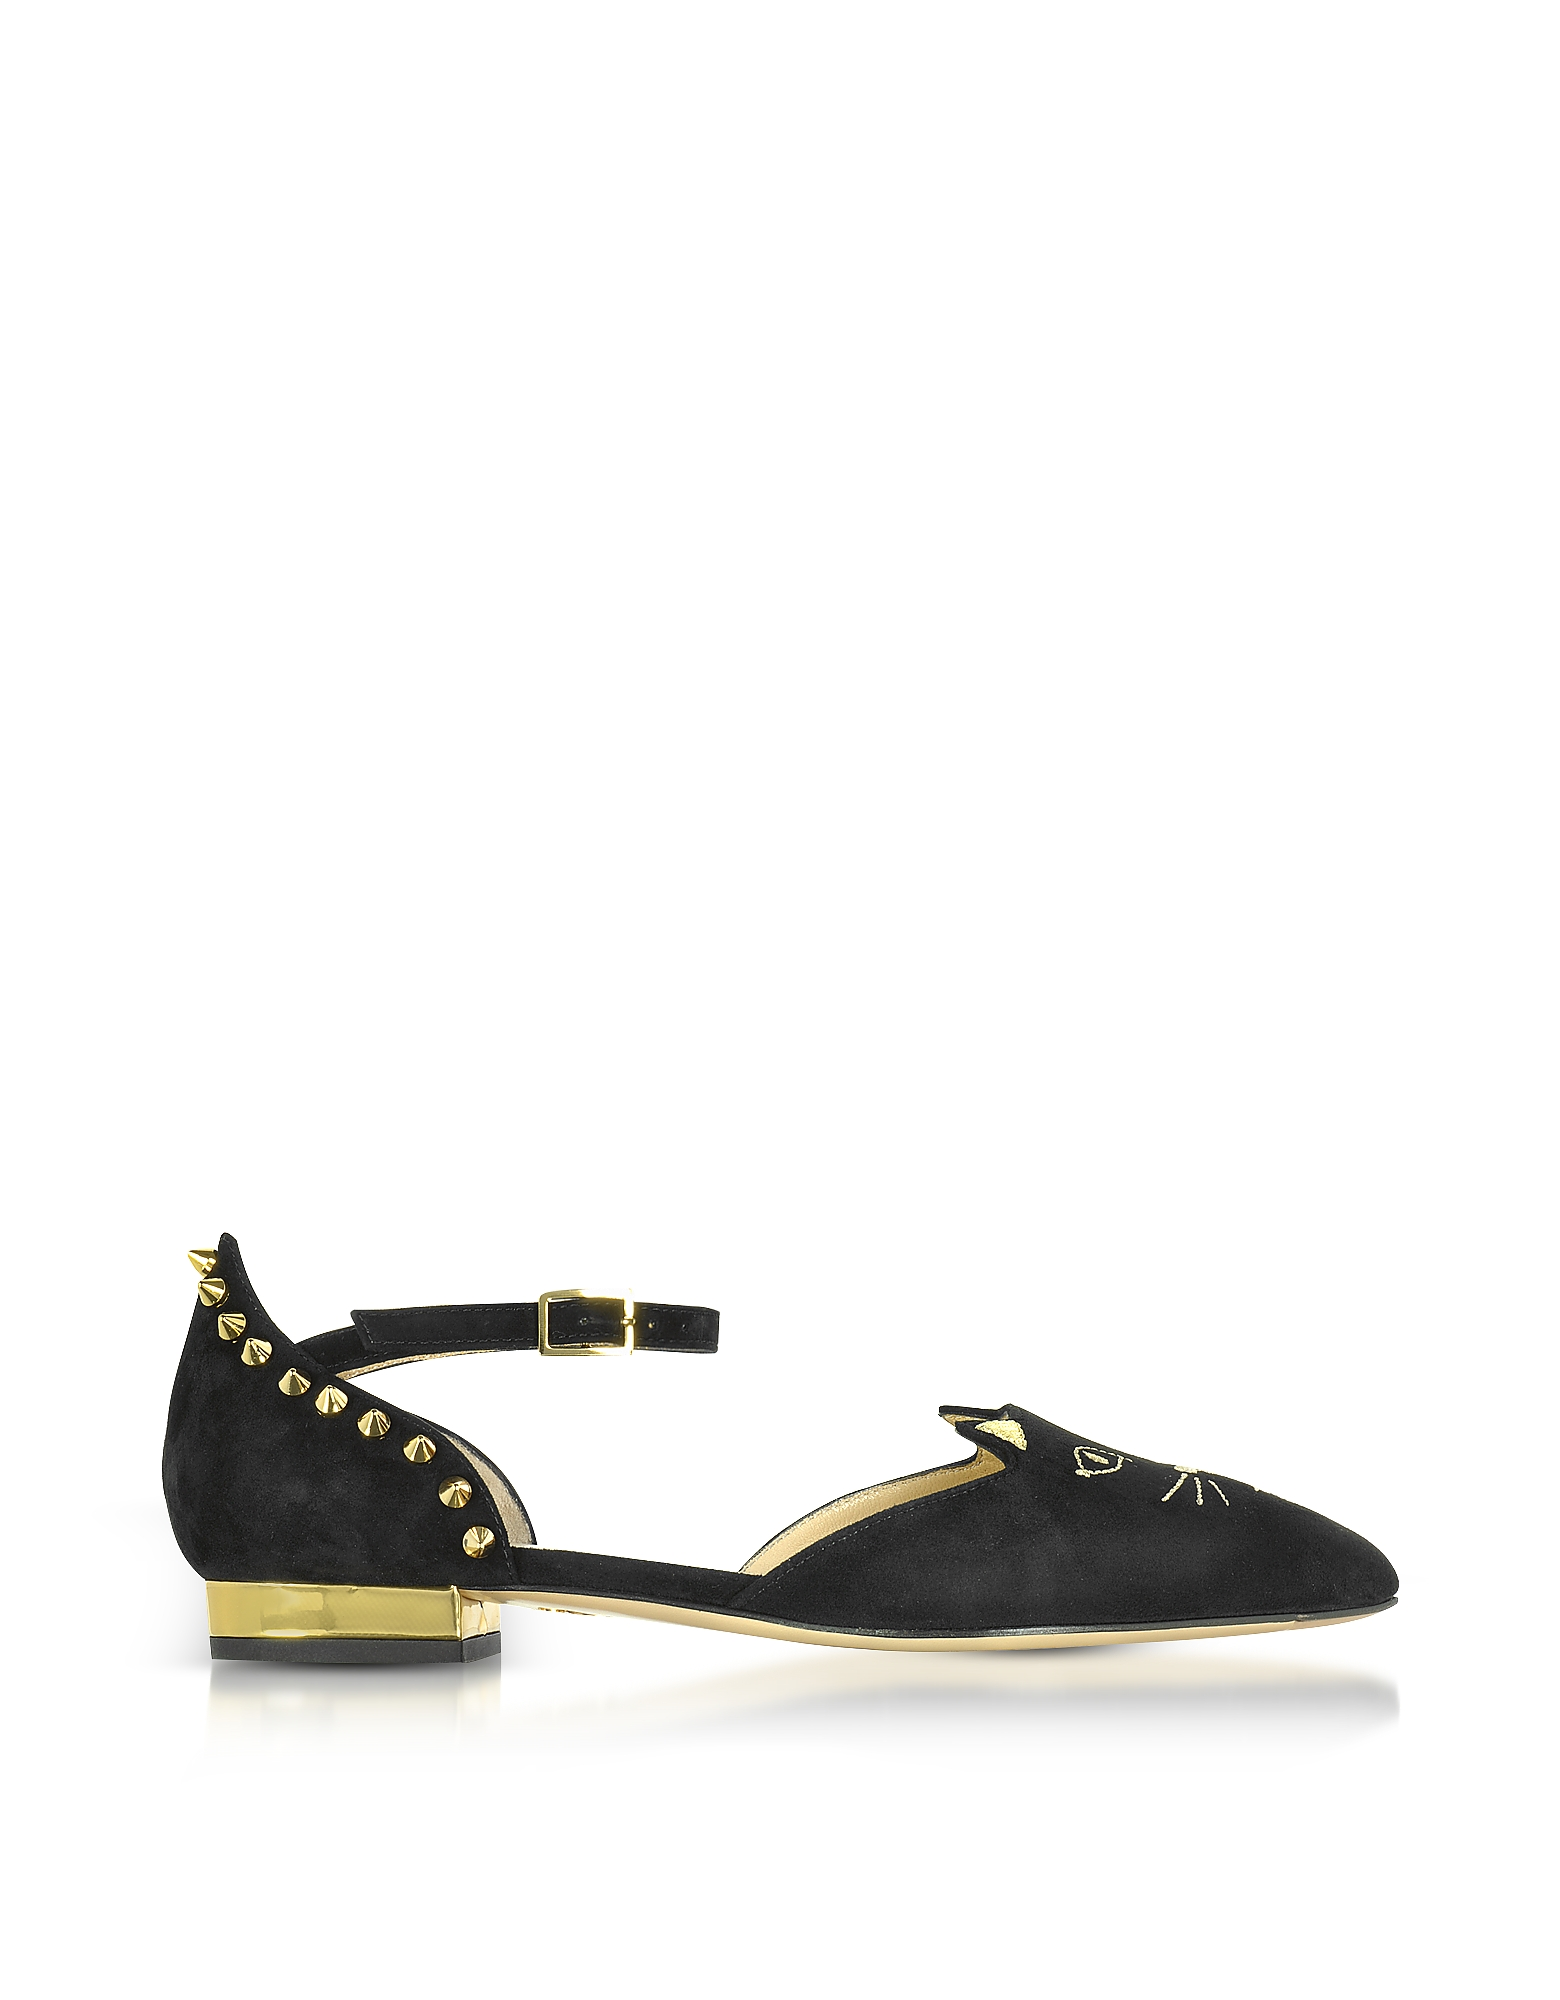 Charlotte Olympia Shoes, Mid-Century Black Suede Kitty D'Orsay Flats